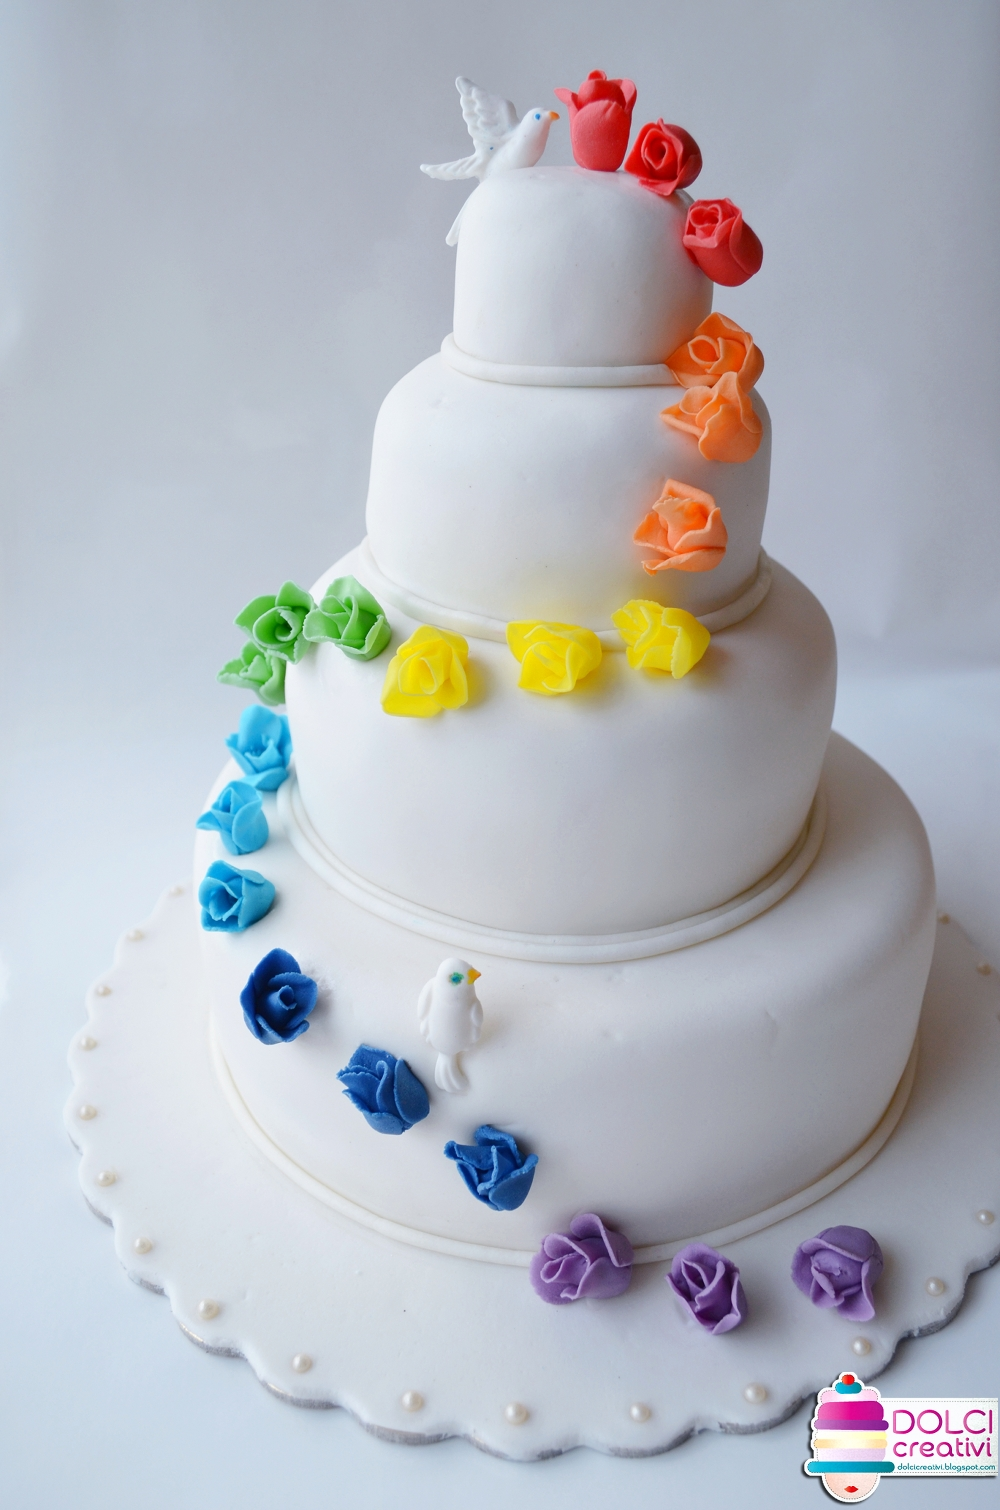 Rainbow Wedding Cake With Butterflies Dony angel cake torte decorate